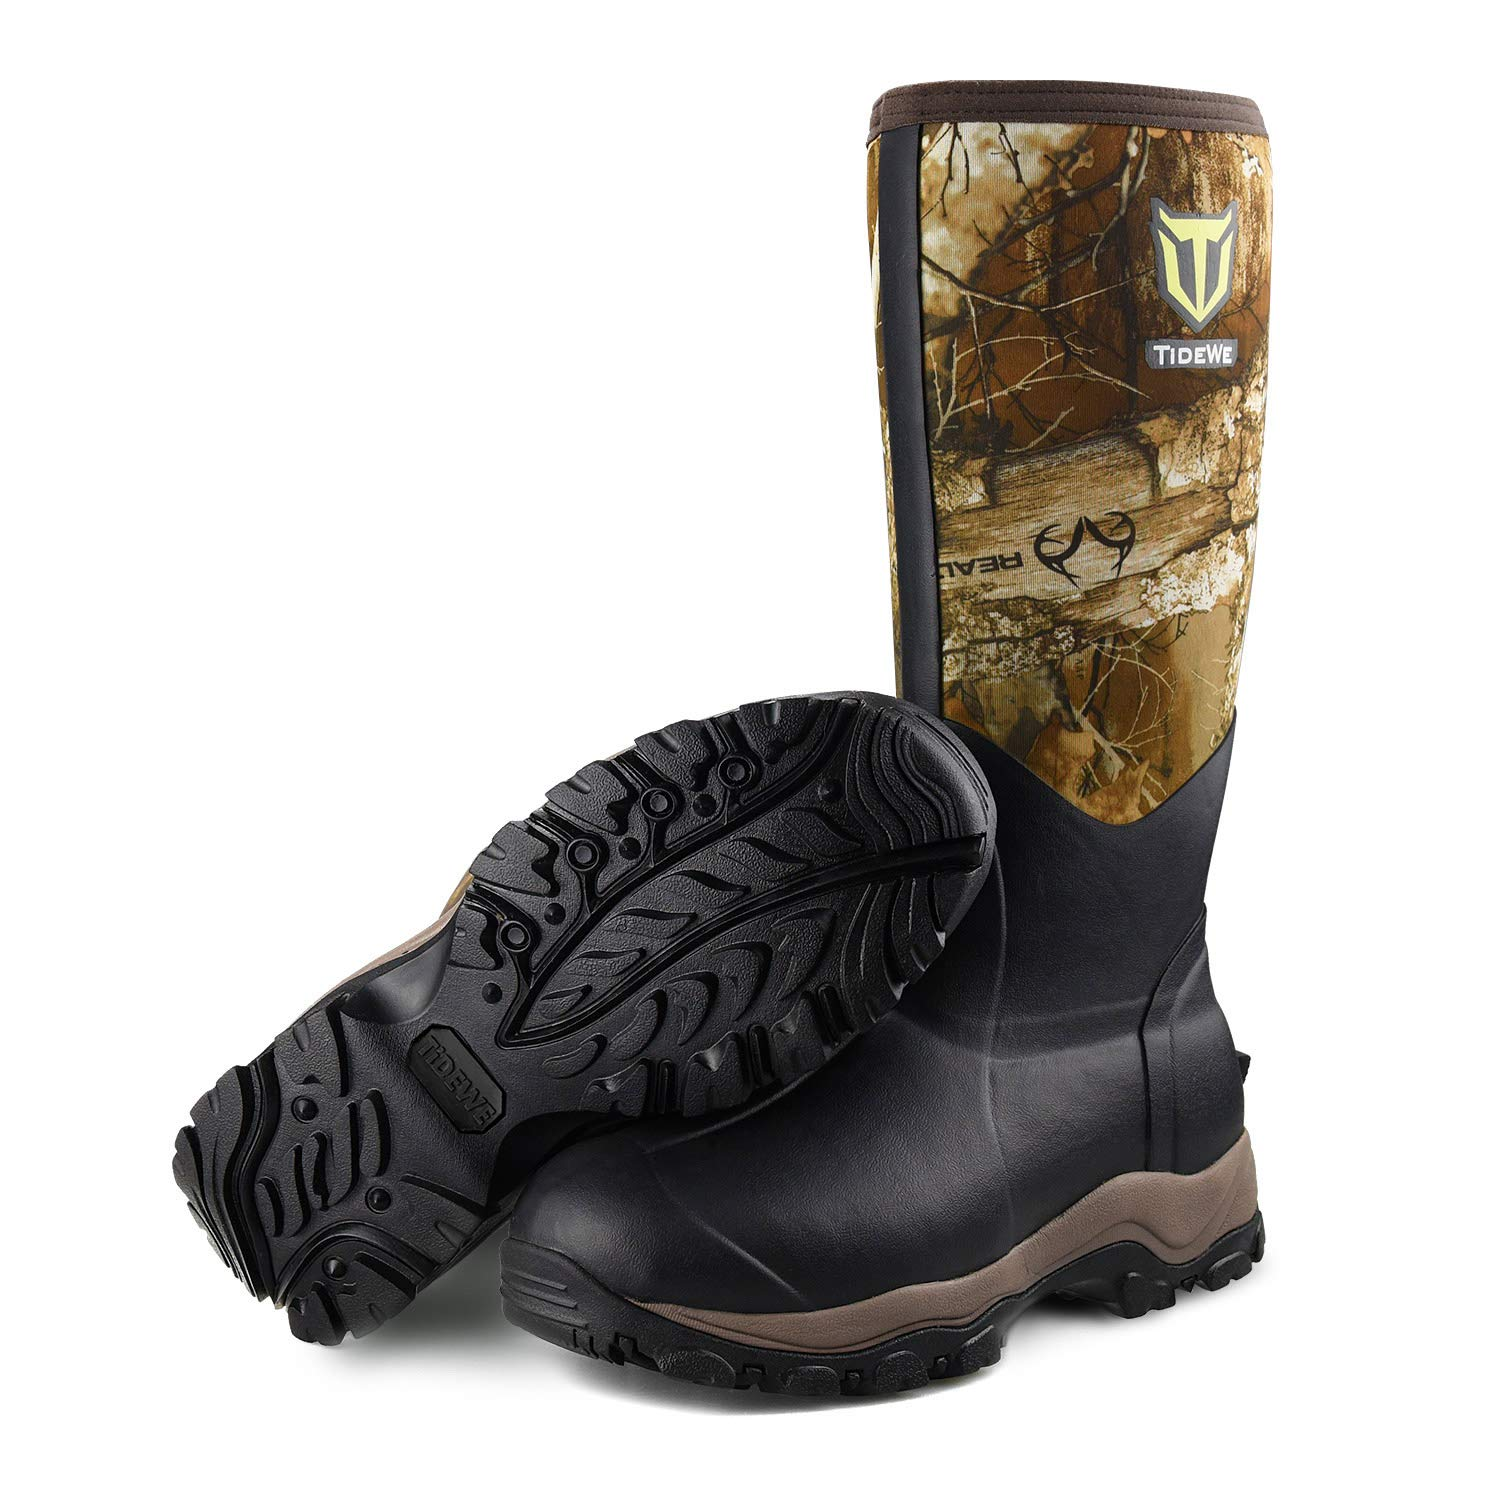 "TIDEWE Hunting Boot for Men, Insulated Waterproof Durable 16"" Men's Hunting Boot, 6mm Neoprene and Rubber Outdoor Boot Realtree Edge Camo(400Gram & Standard)"